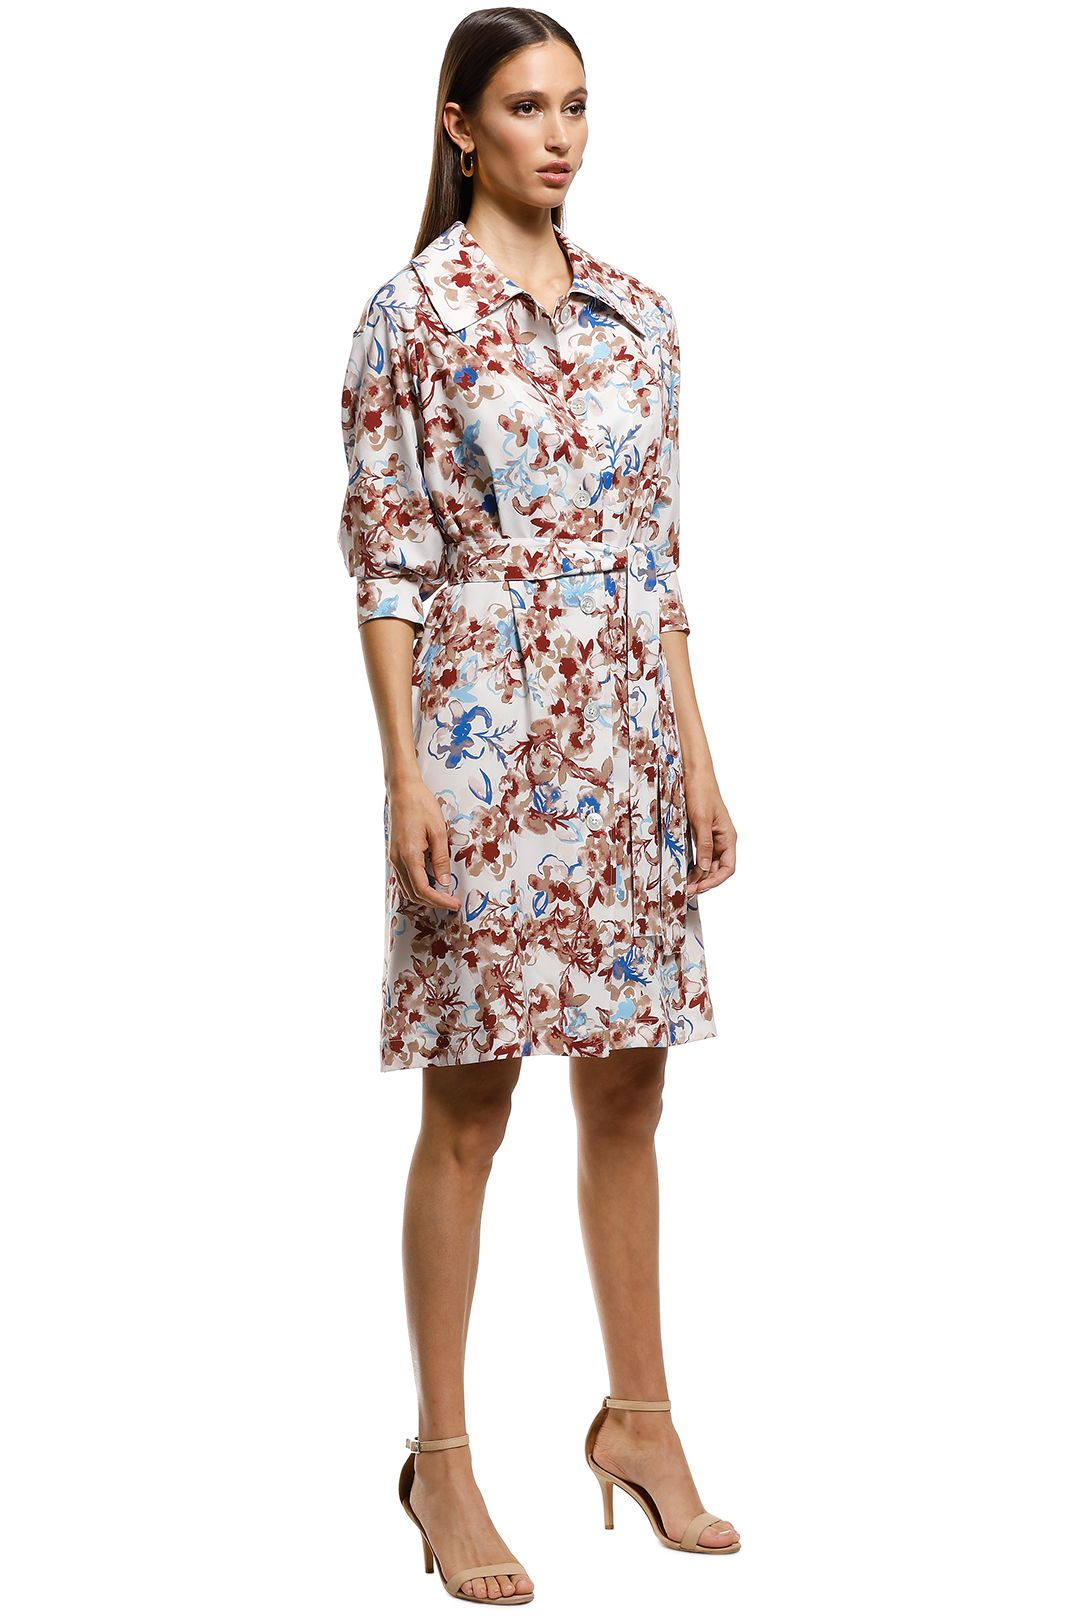 Scanlan Theodore - Belita Trench Dress - Multi - Side